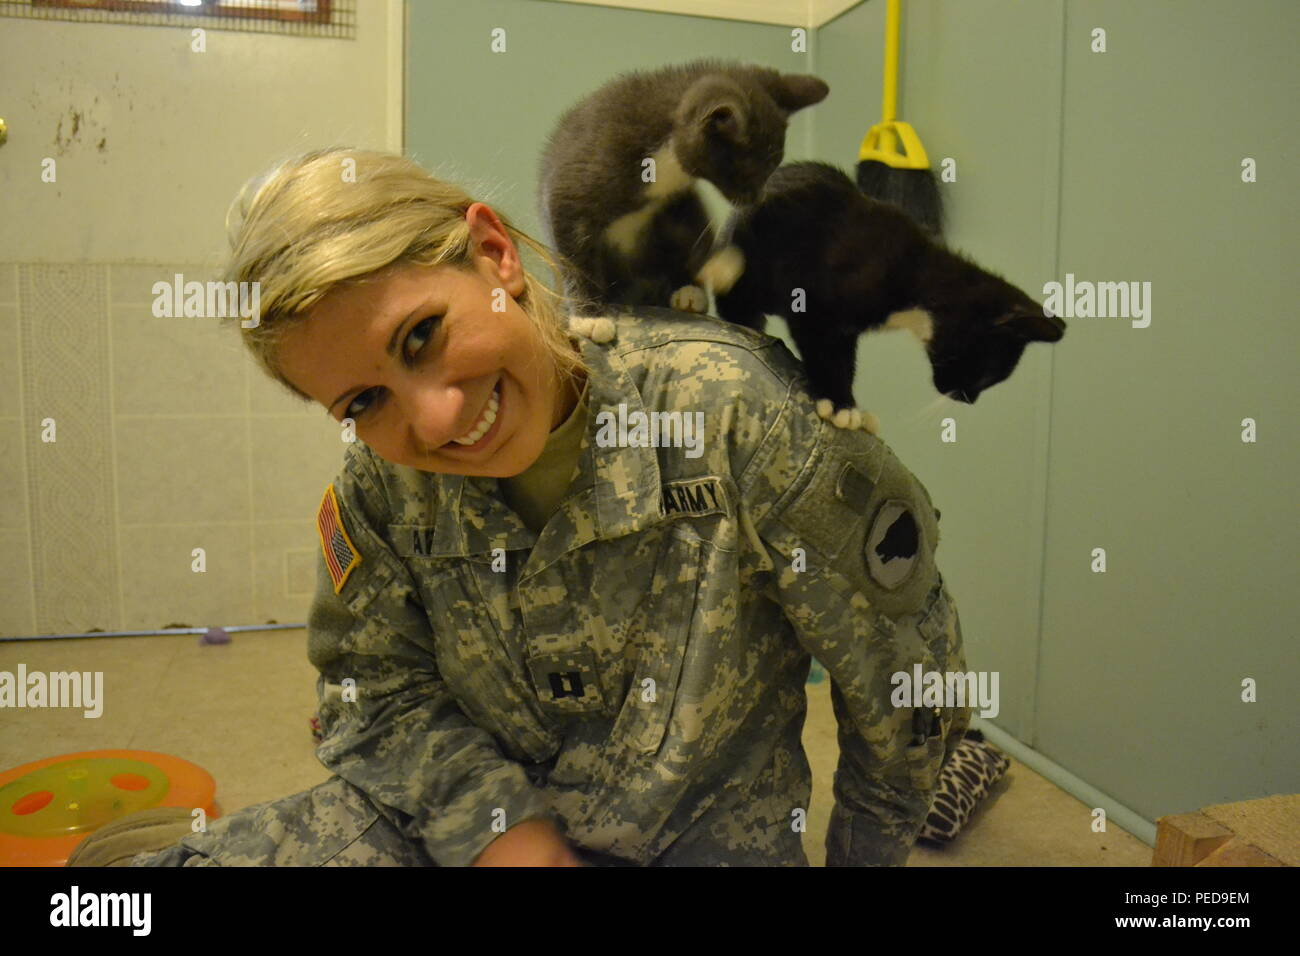 Capt. Cheryl Abbate, of 1st Brigade, 104th Division, socializes with the kittens at the Animal Refuge Center. - Stock Image